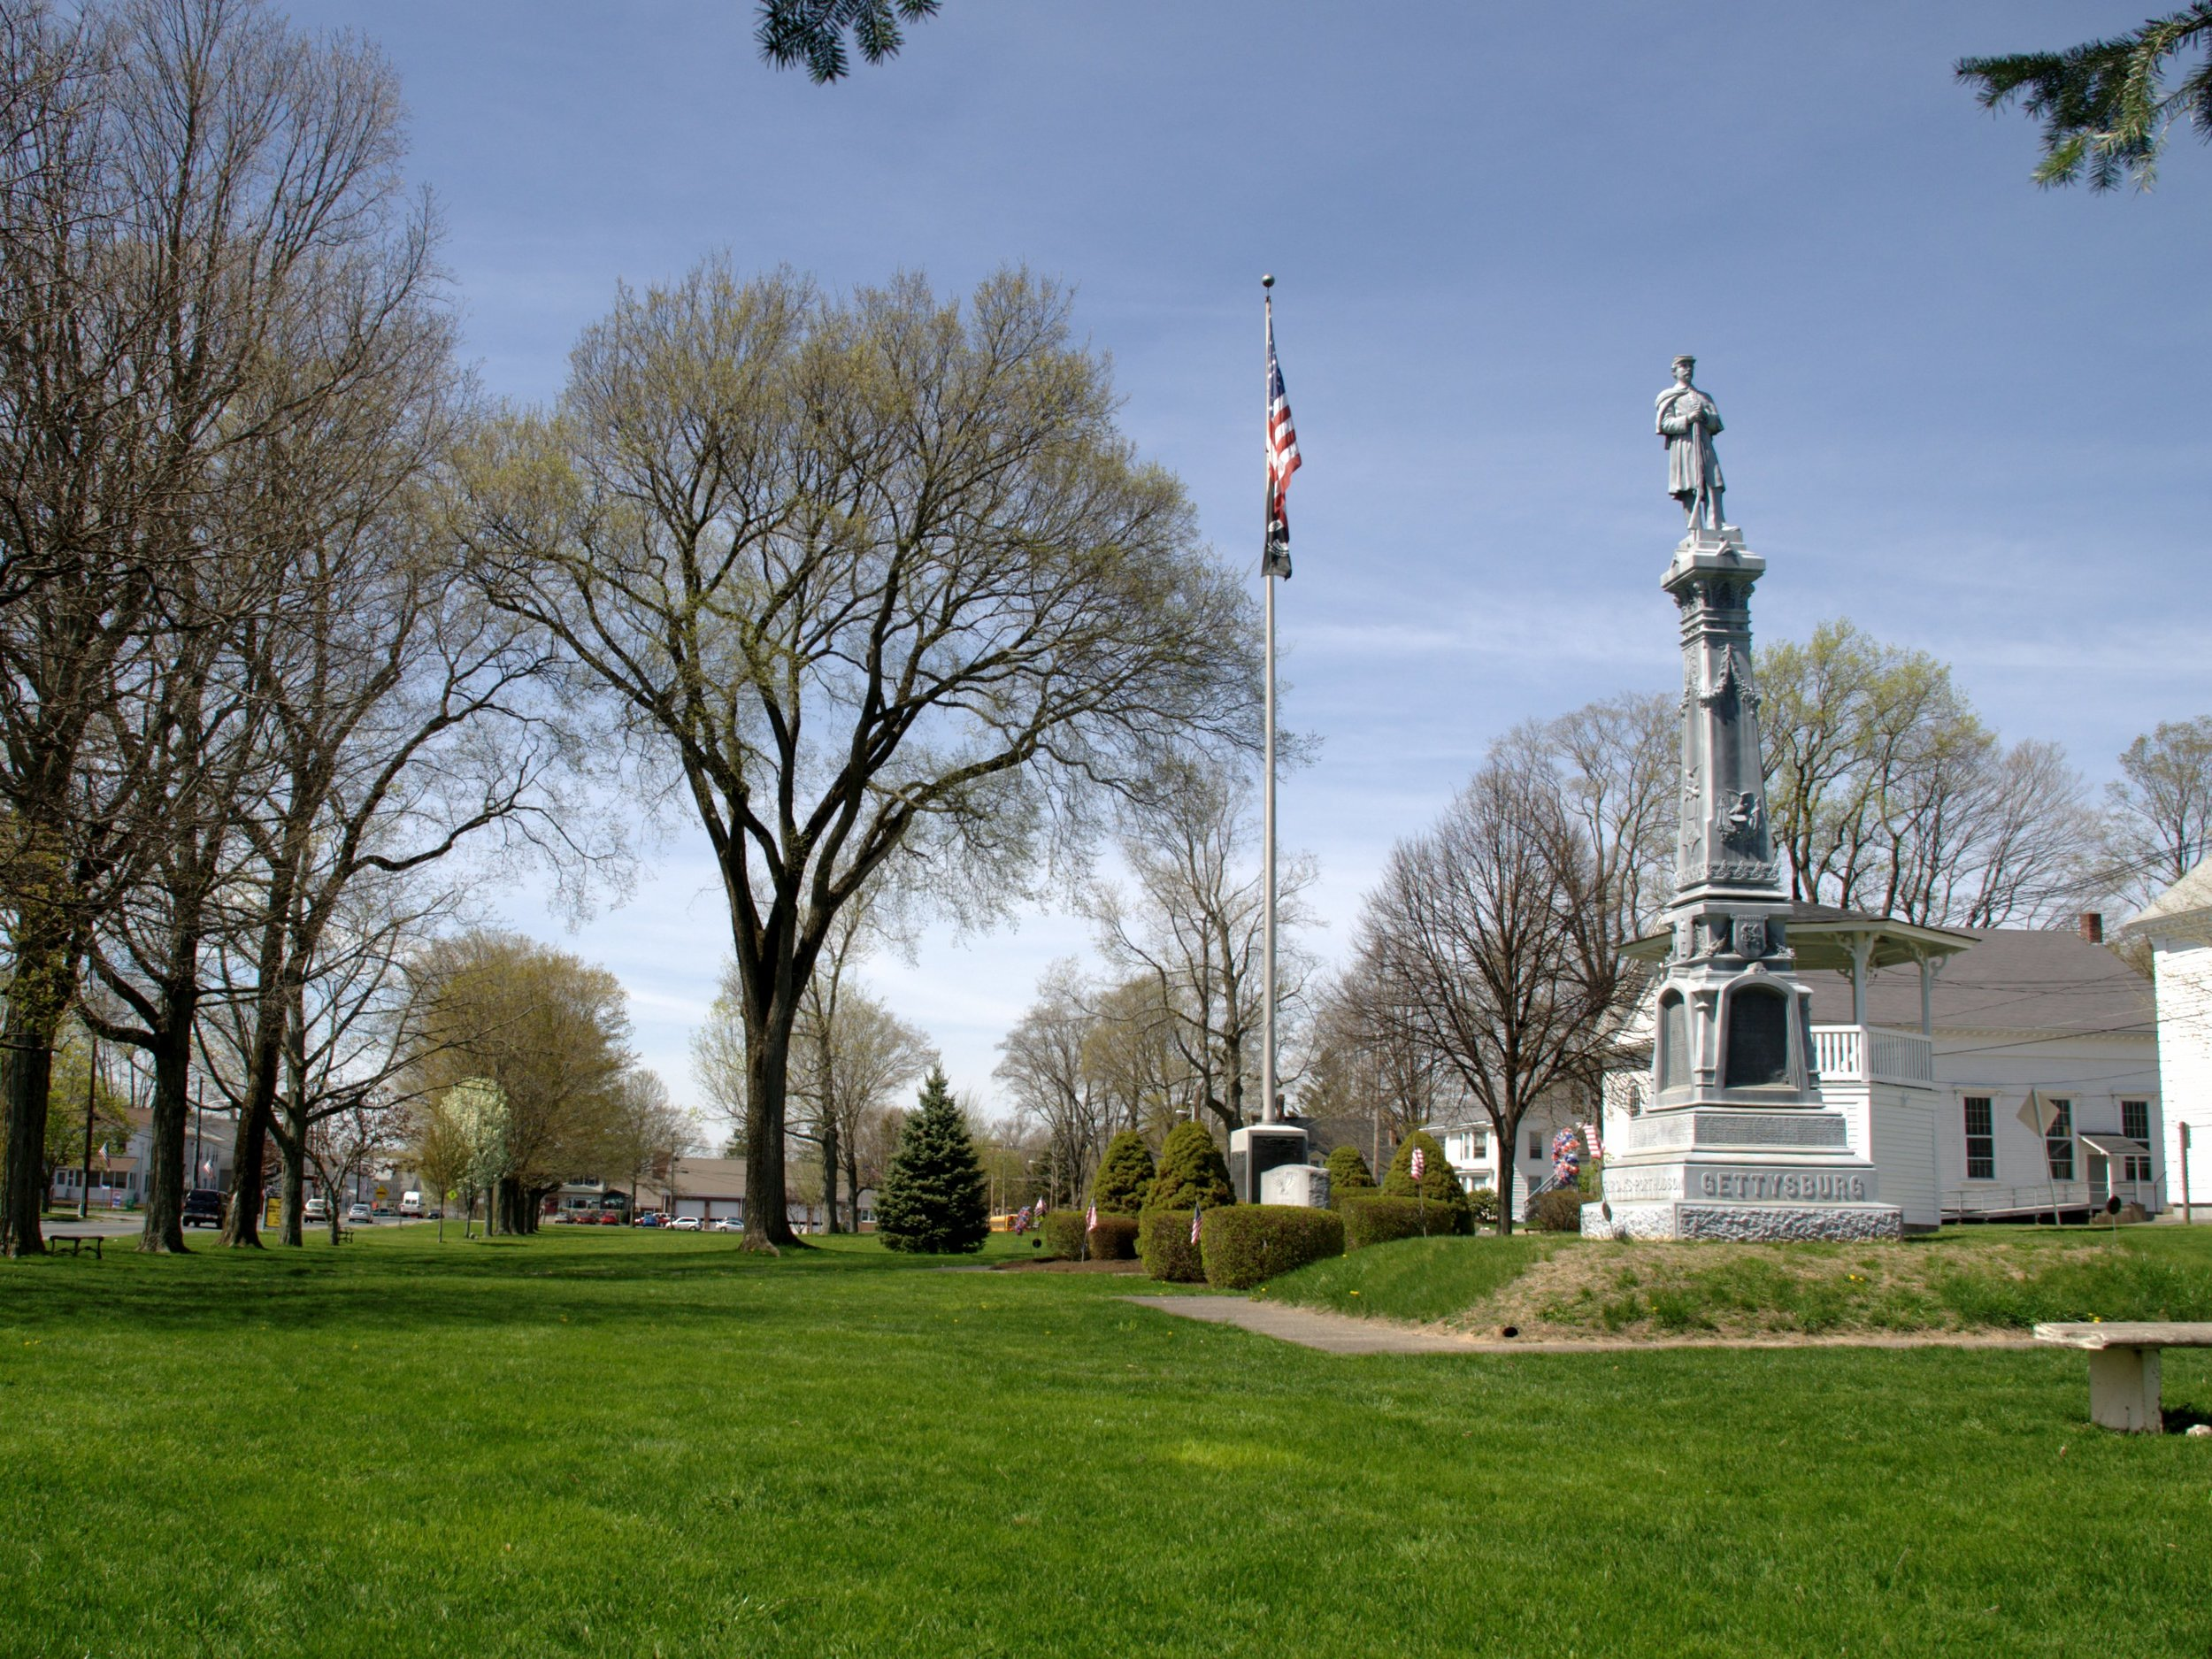 BELCHERTOWN - A Growing Hampshire County Community